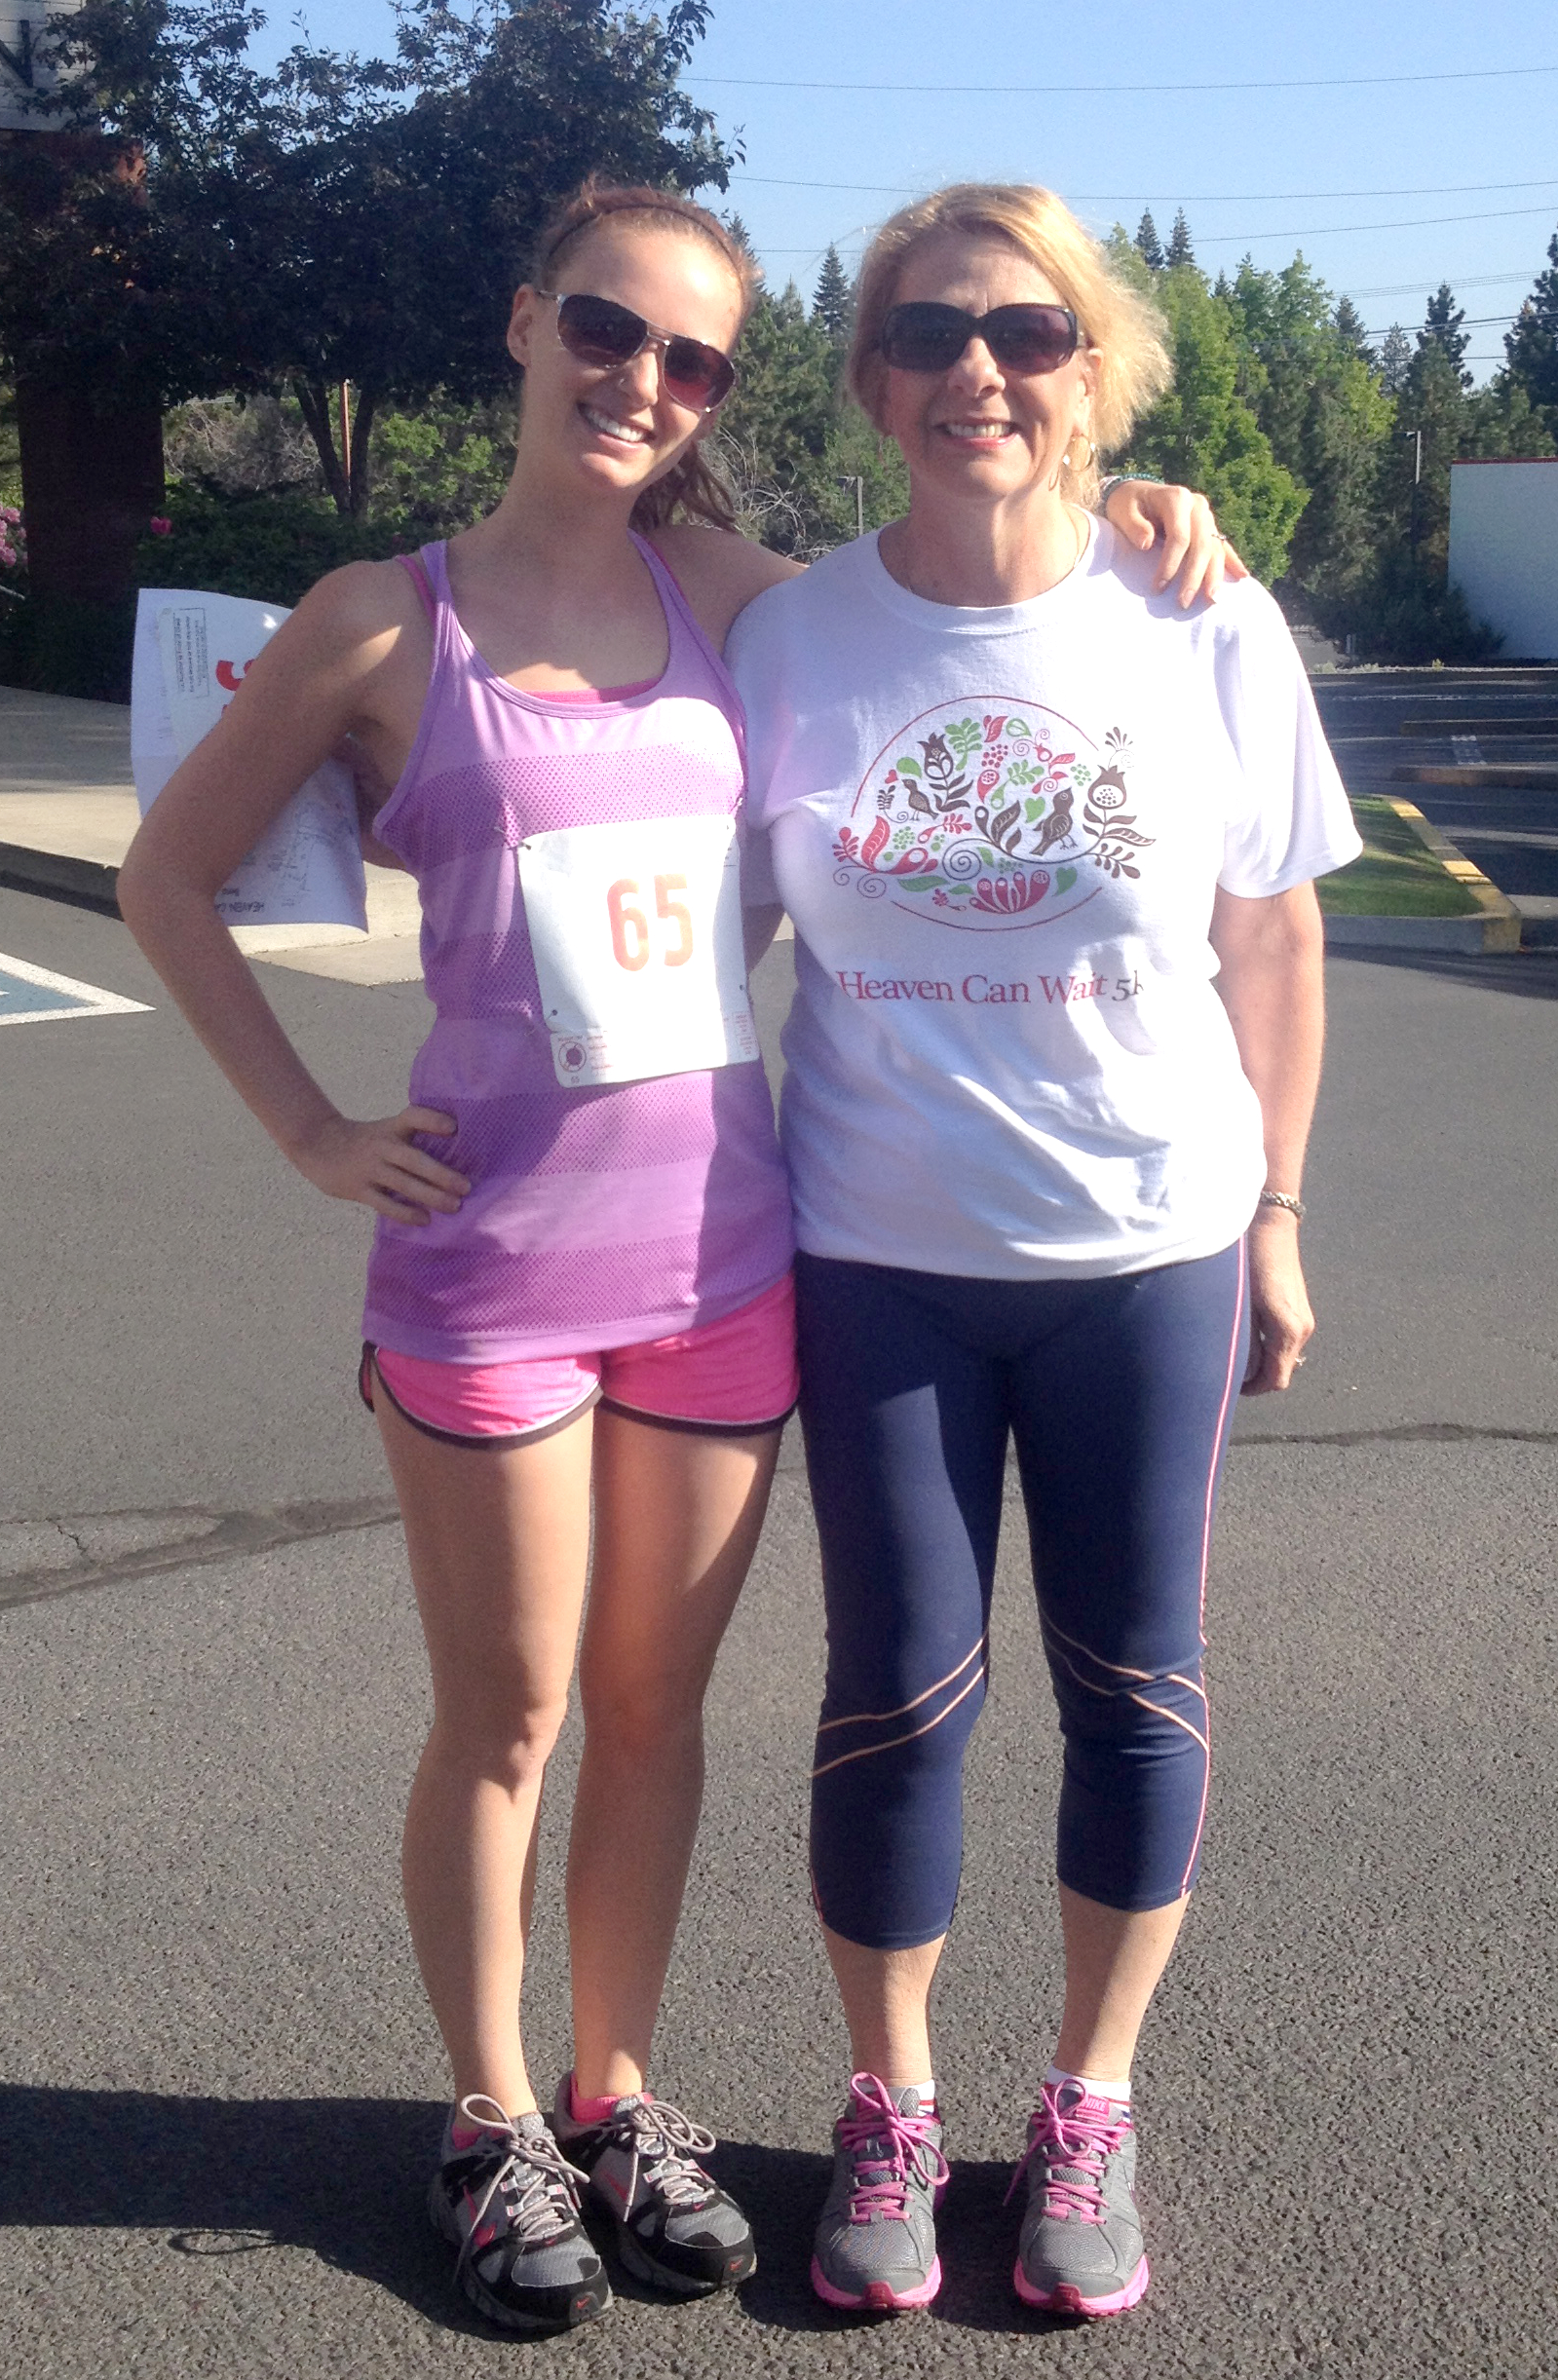 My step-mom and I ready to run!